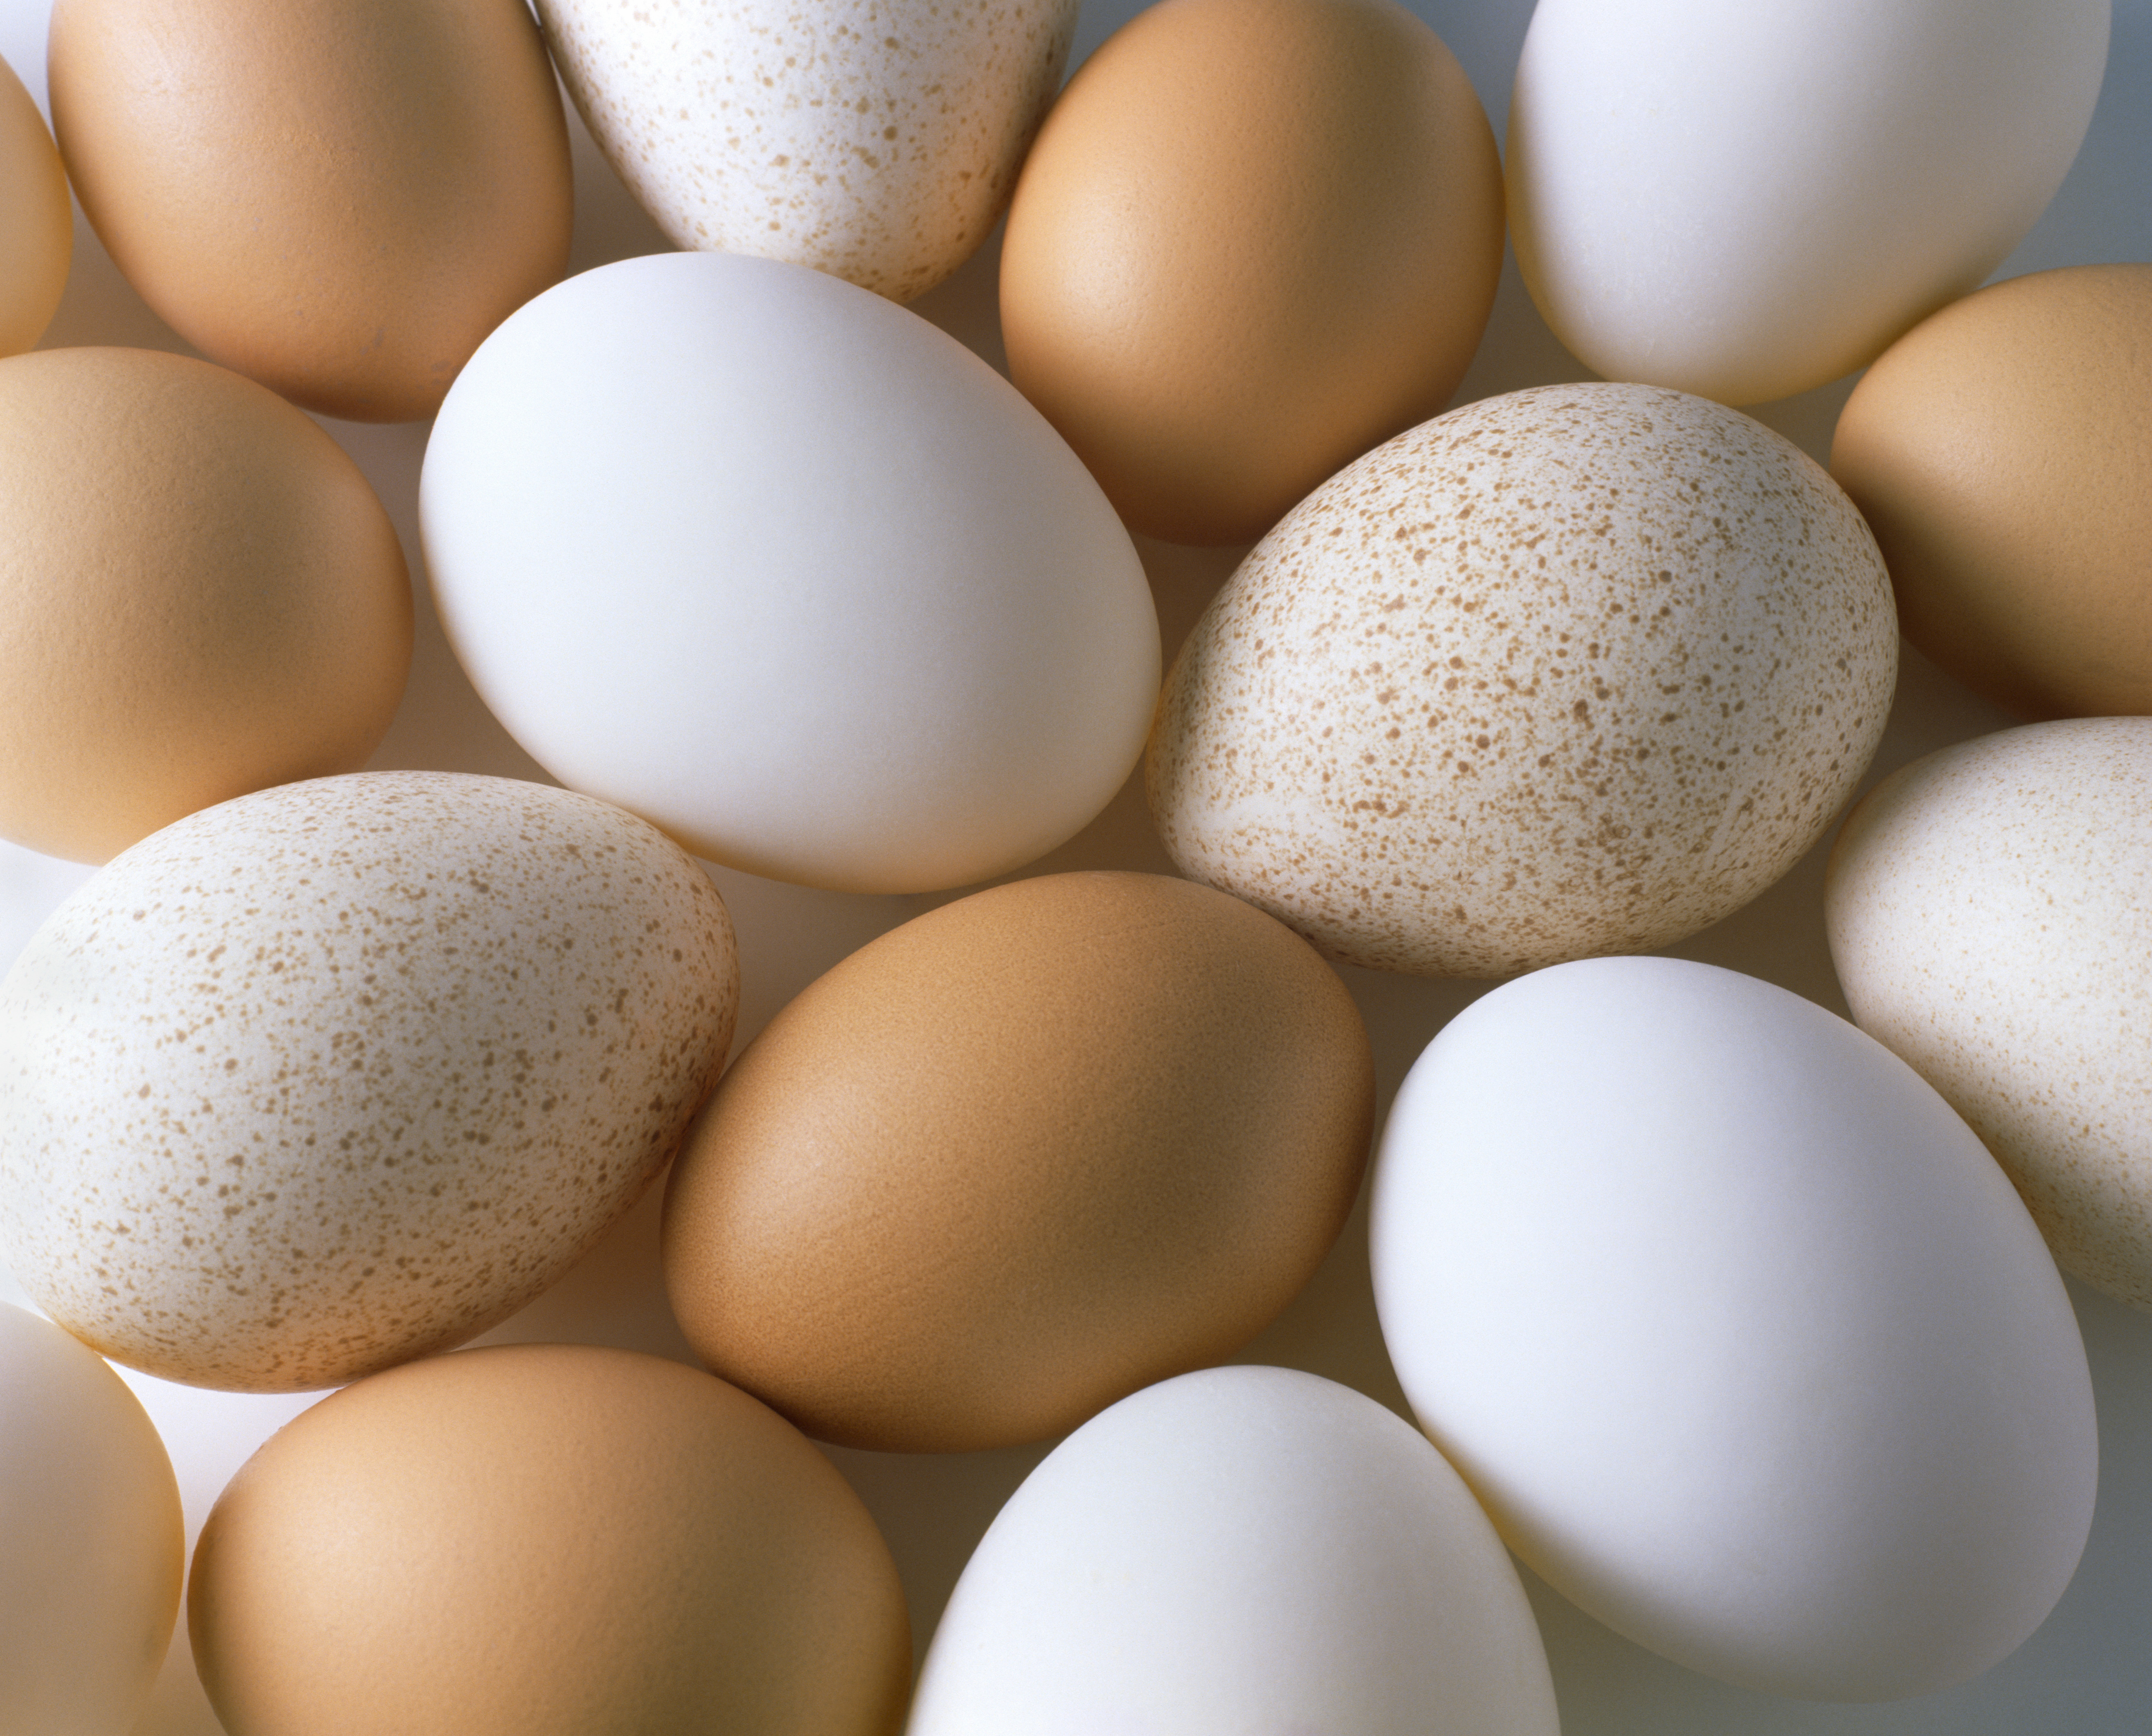 Heres why your brown eggs have more blood spots than